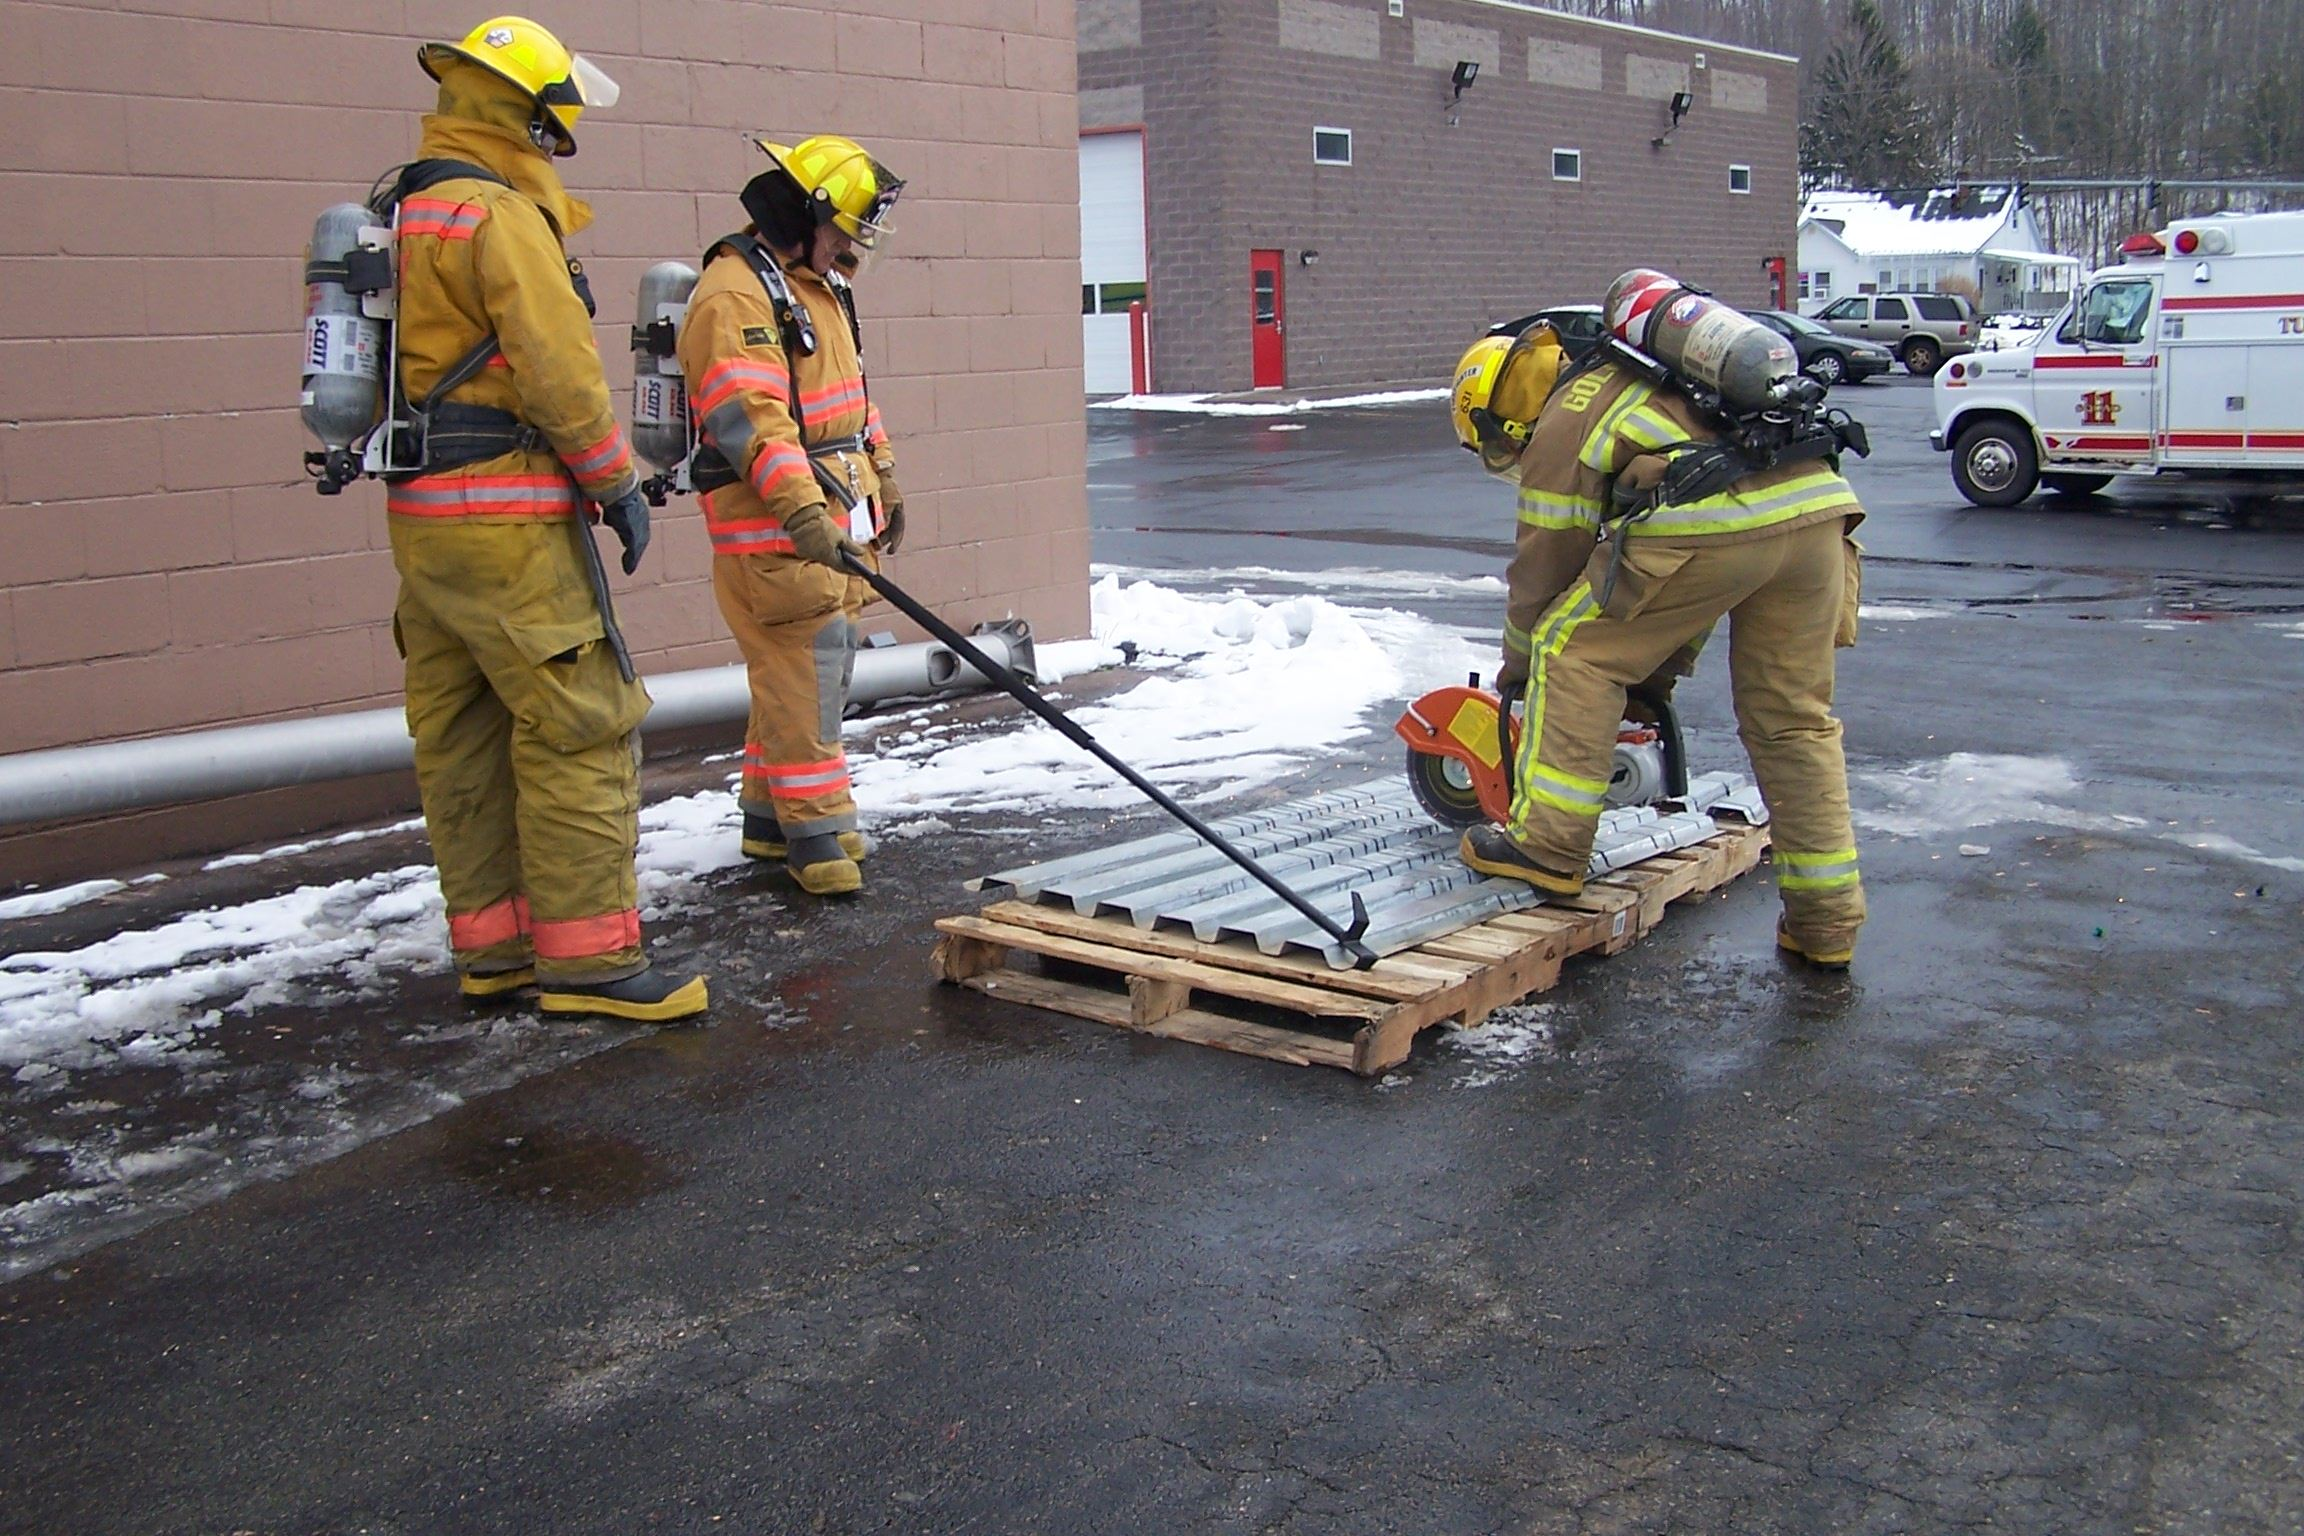 A firefighter demonstrates how to cut a metal roof with a powersaw while two other firefighters observe.